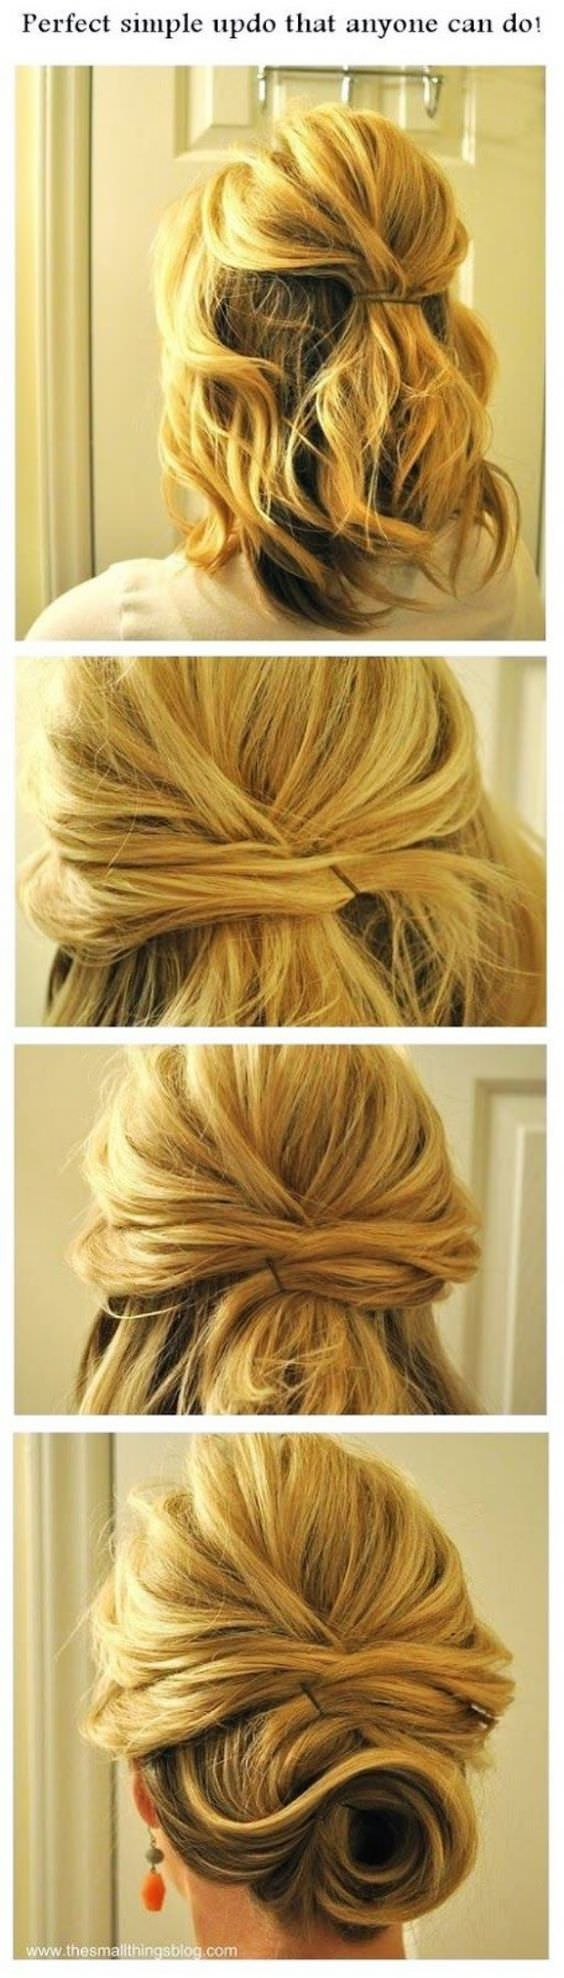 15 Cute and Easy Hairstyle Tutorials For Medium-Length ...